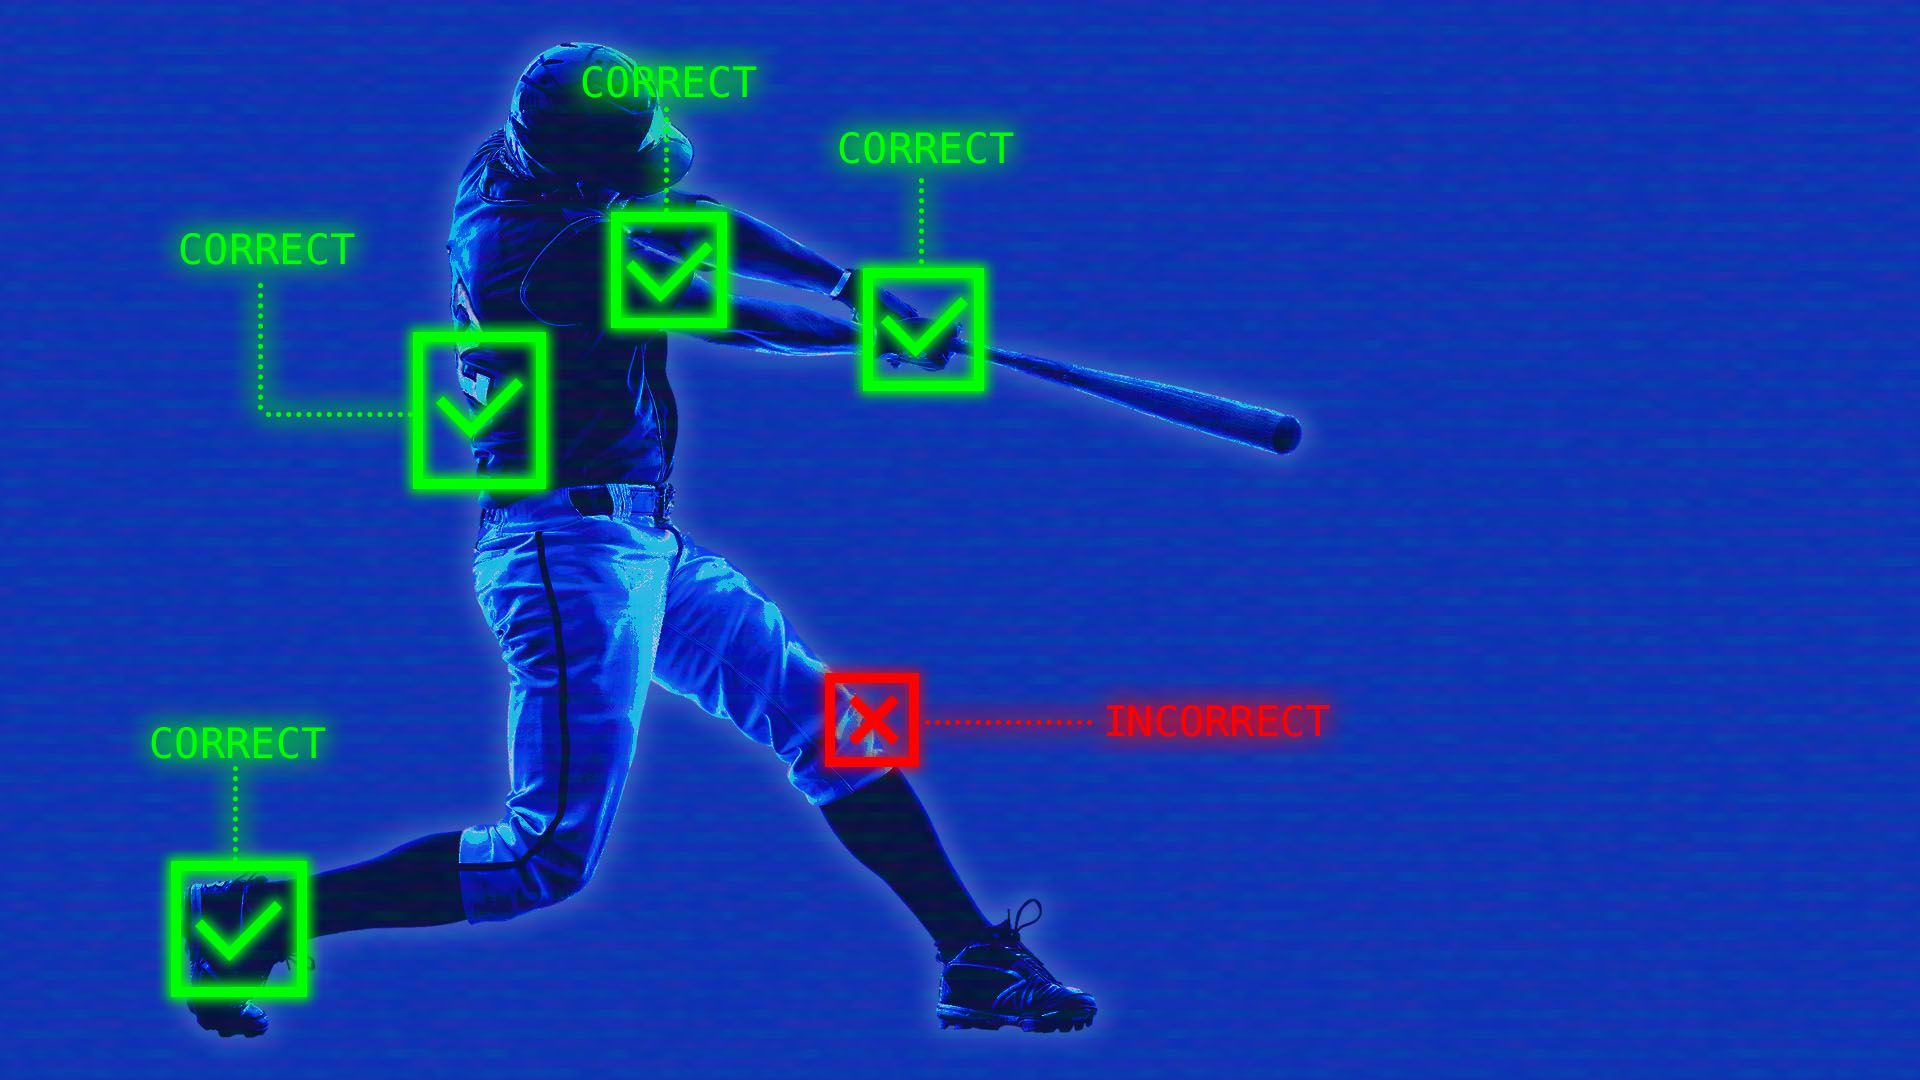 Illustration of a baseball player's batting form being evaluated by technology